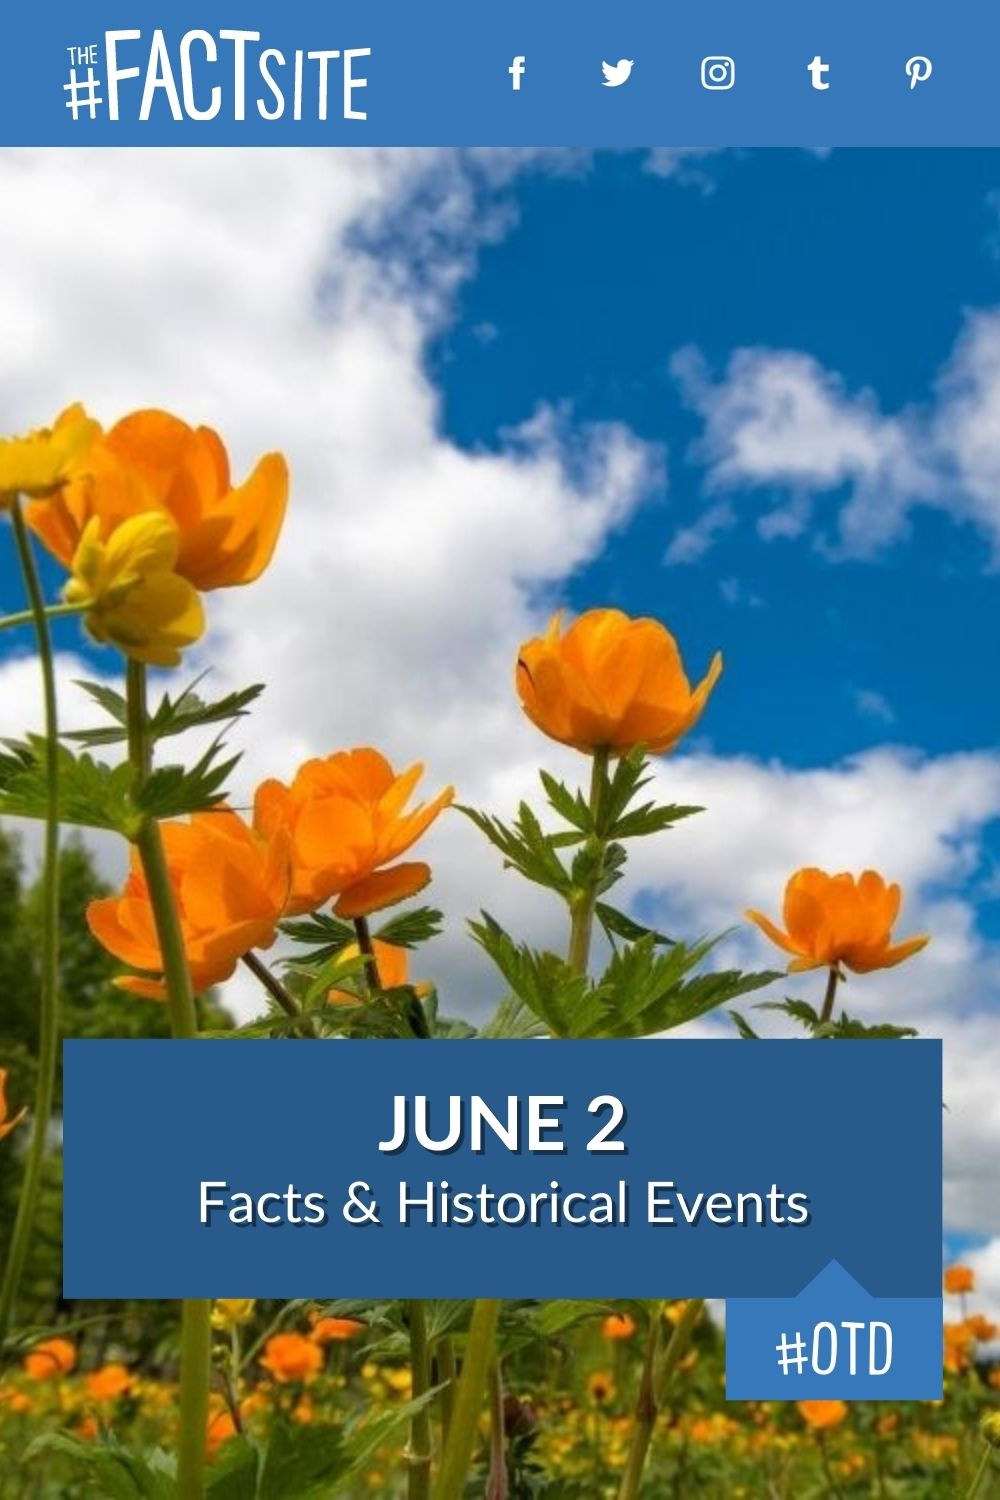 Facts & Historic Events That Happened on June 2